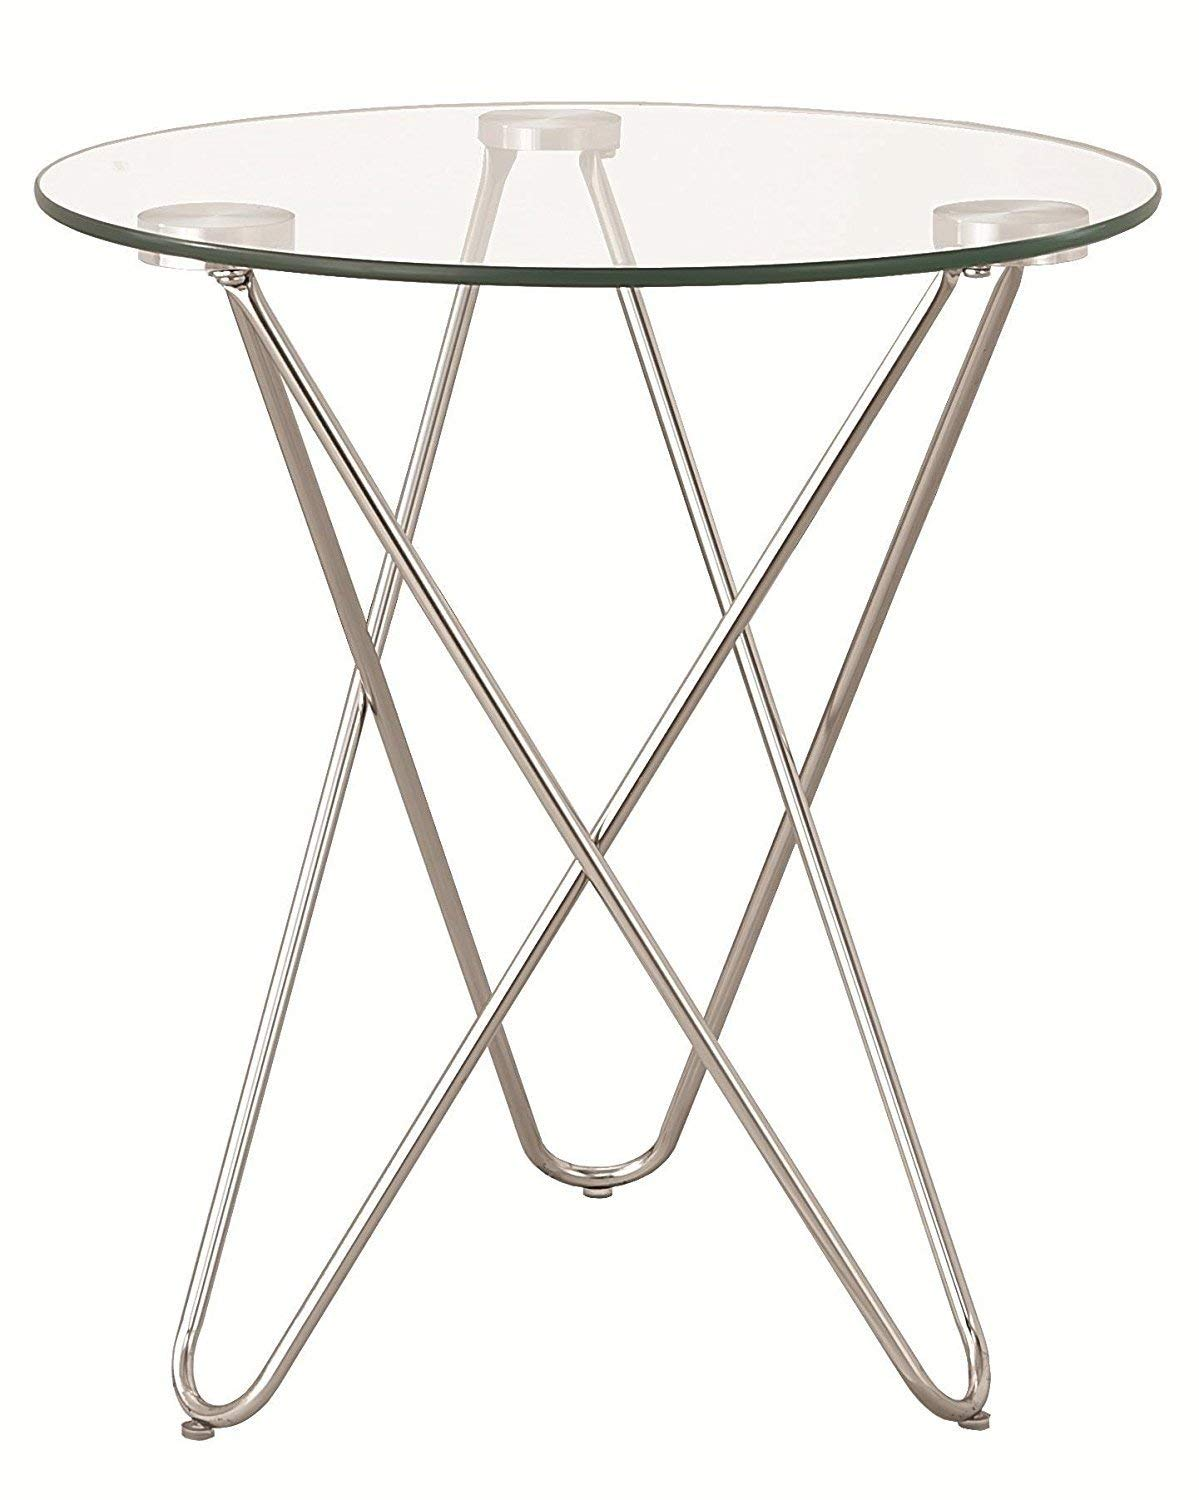 Indoor Multi-Function Accent Table Study Computer Home Office Desk Bedroom Living Room Modern Style End Table Sofa Side Table Coffee Table Glass top side table